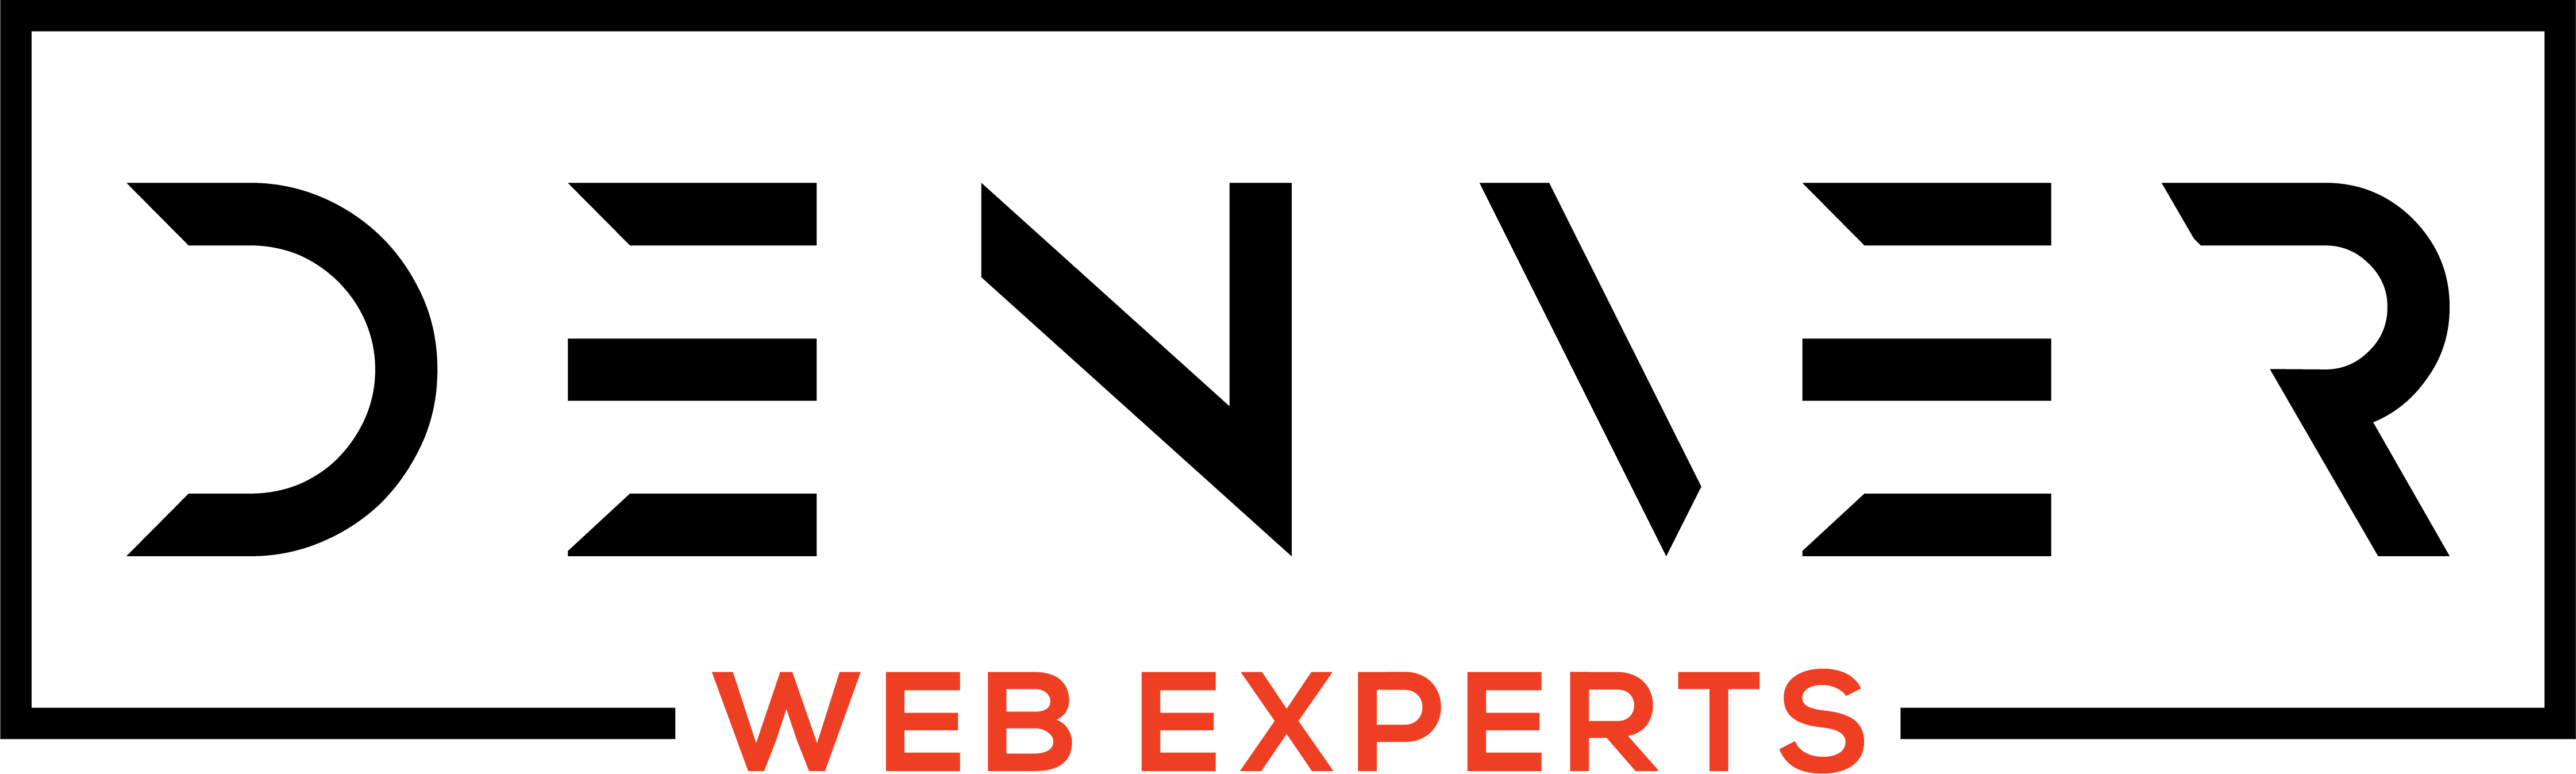 Denver Web Experts Logo